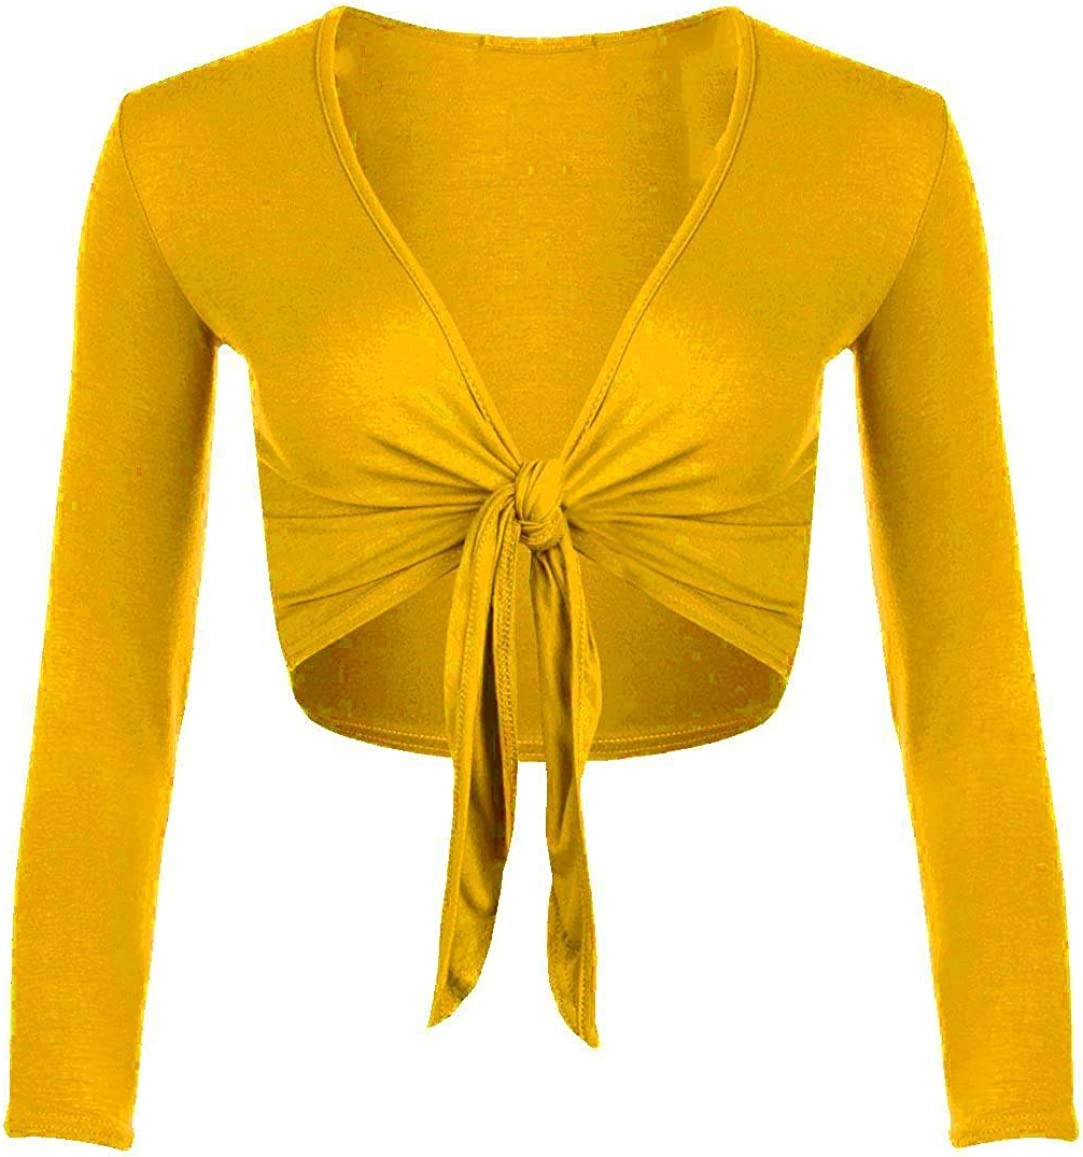 Style wise Fashion Womens Long Sleeves Tie Up Front Bolero Shrug Ladies Wrap Open Crop Cardigan Top